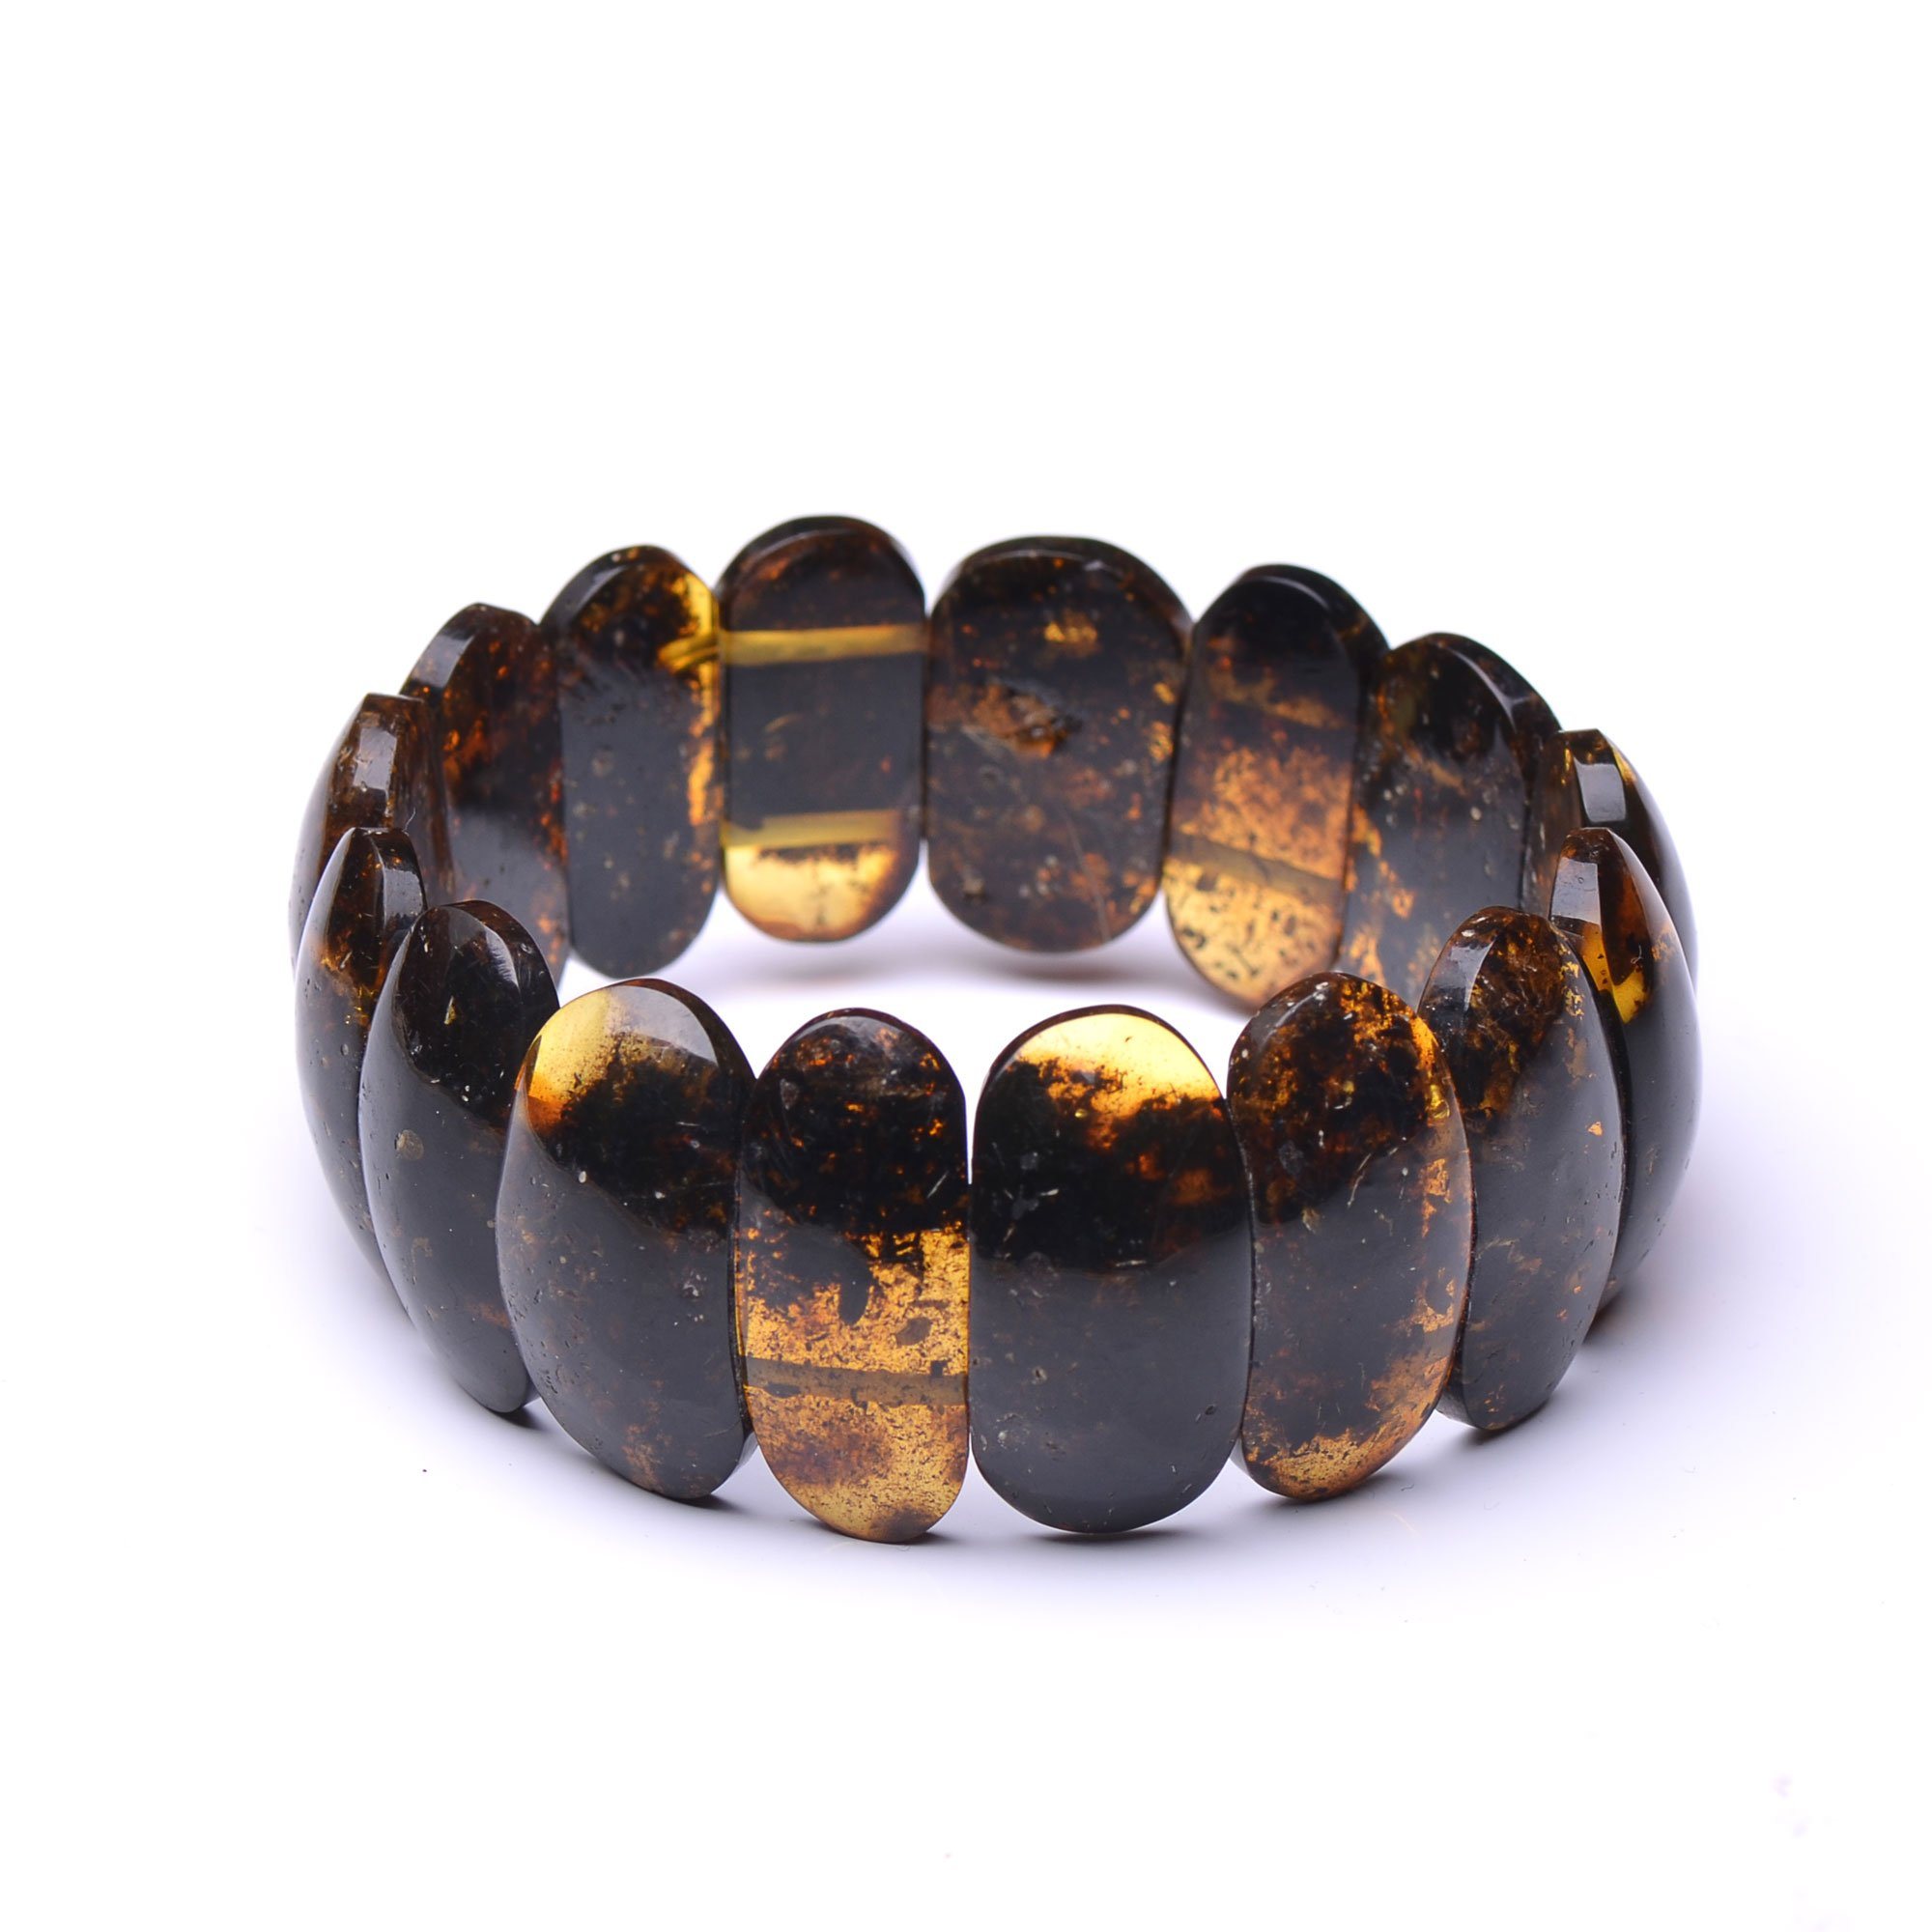 Exclusive Vintage Amber Bracelet for Woman - Unique Amber Pieces - Certified 100% Baltic Amber Bracelet